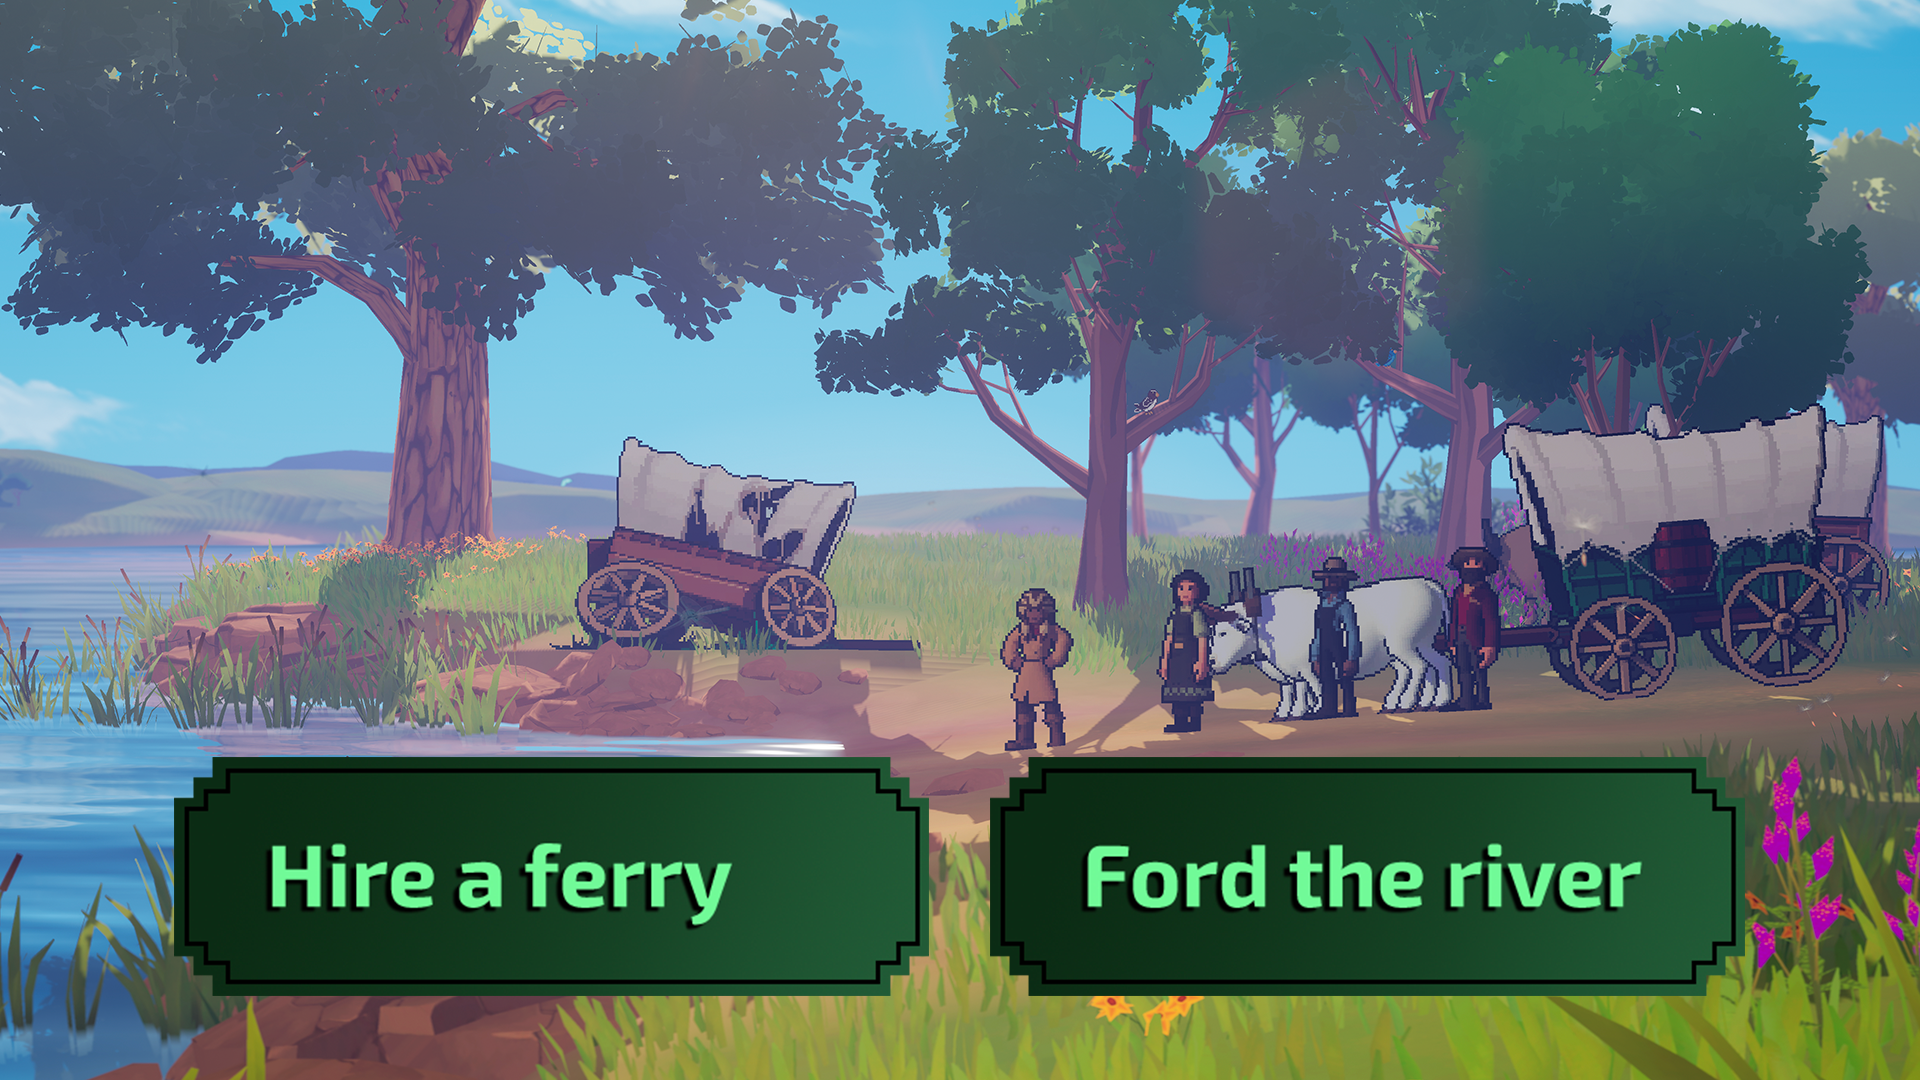 A wagon party at the edge of a river with two choices: Hire a ferry and Ford the river